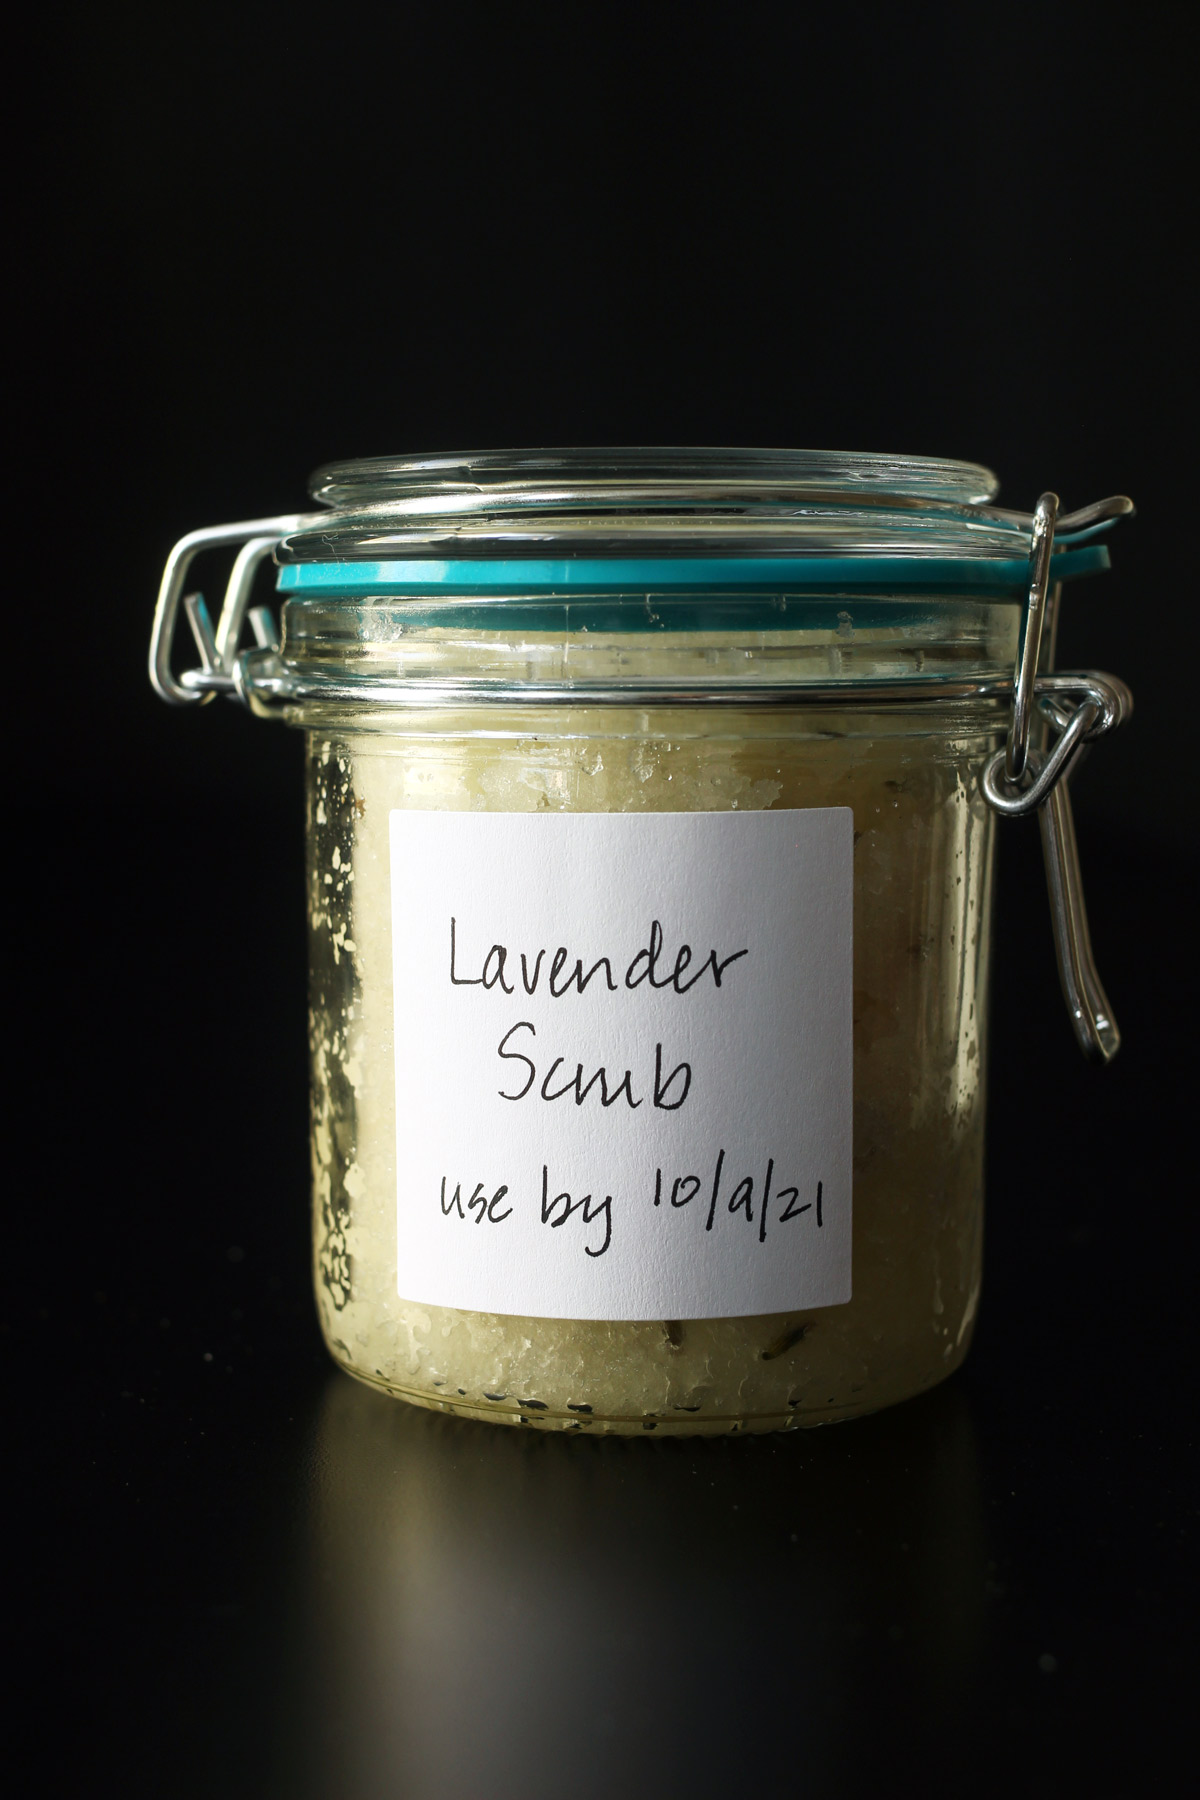 lavender scrub in labeled jar with lid